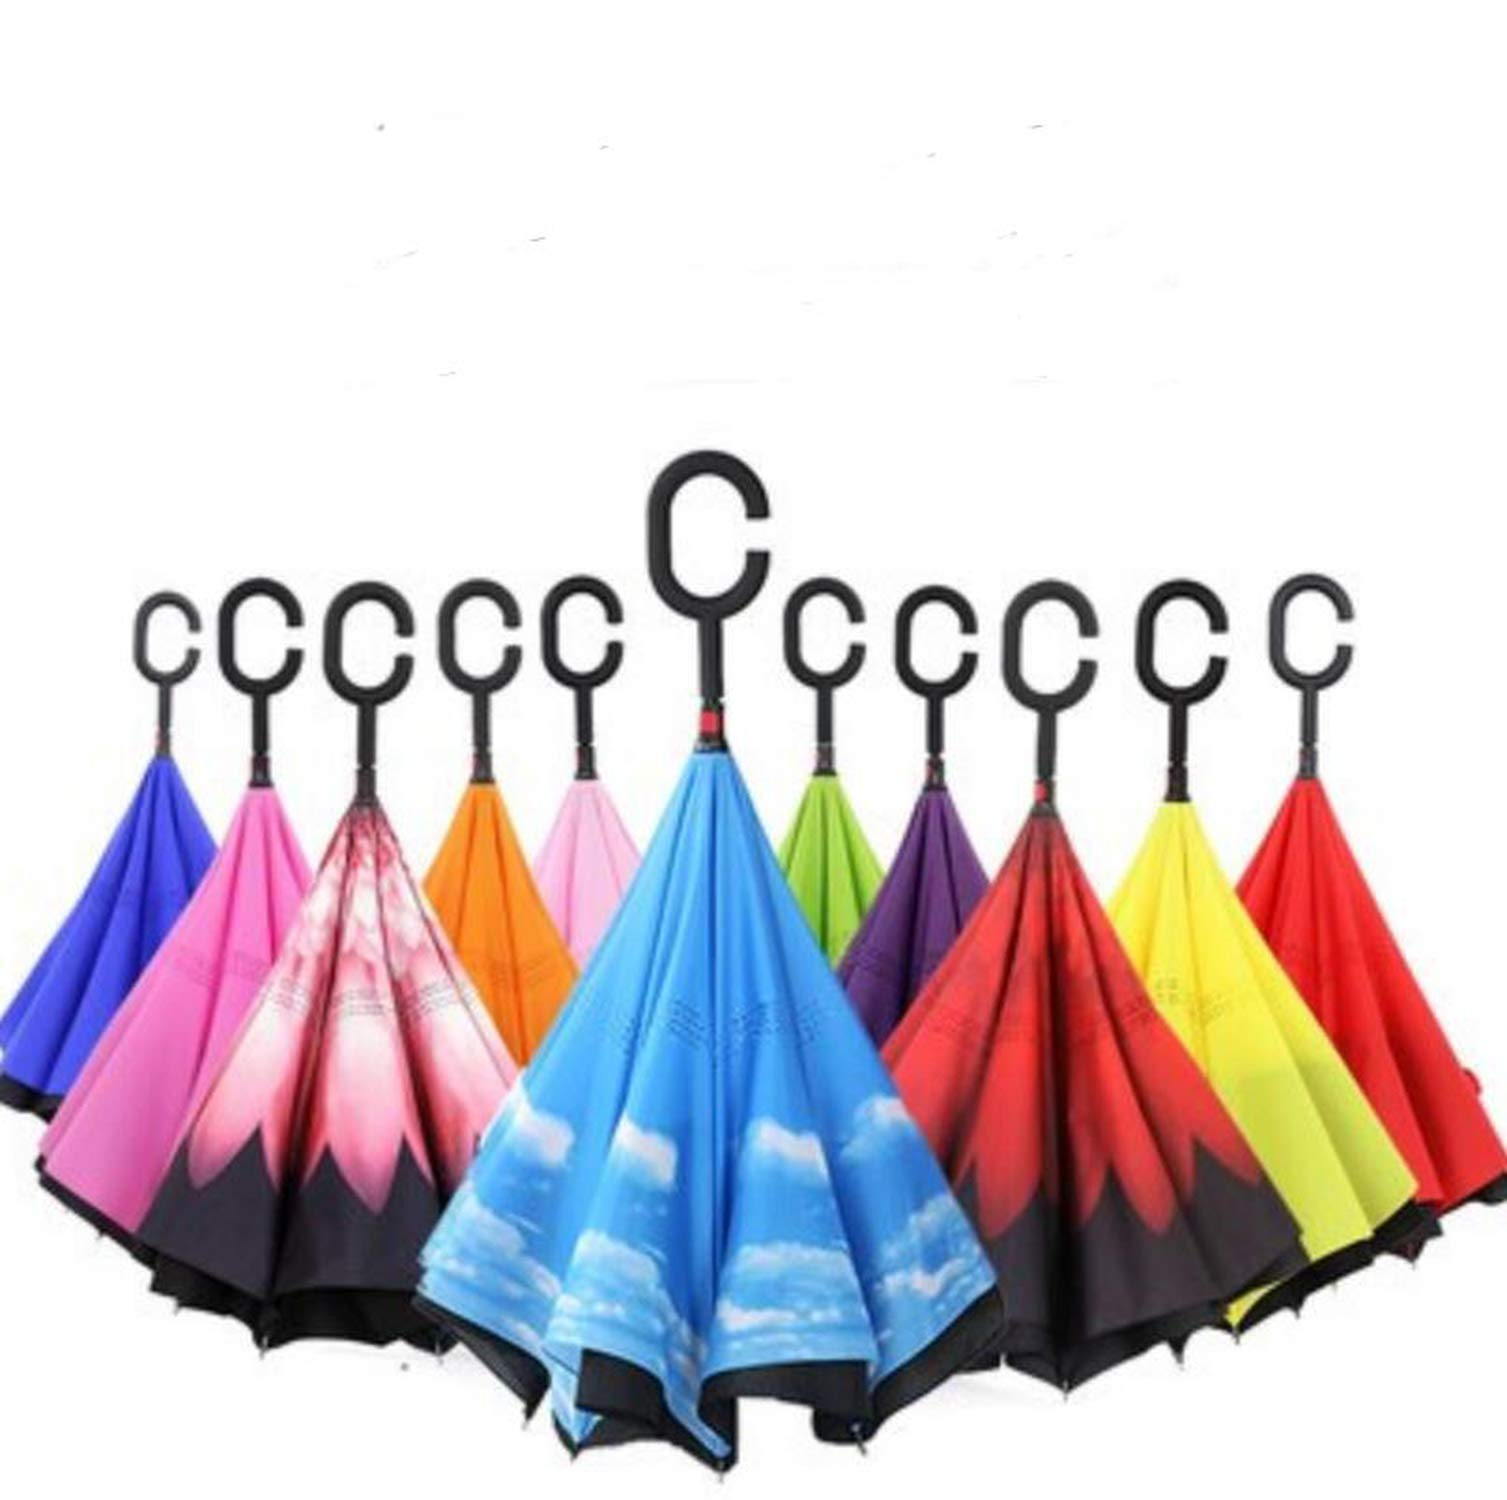 Double Layer Reverse Umbrellas Self Stand Inside Out Rain Protection Umbrella With C Hook Hands